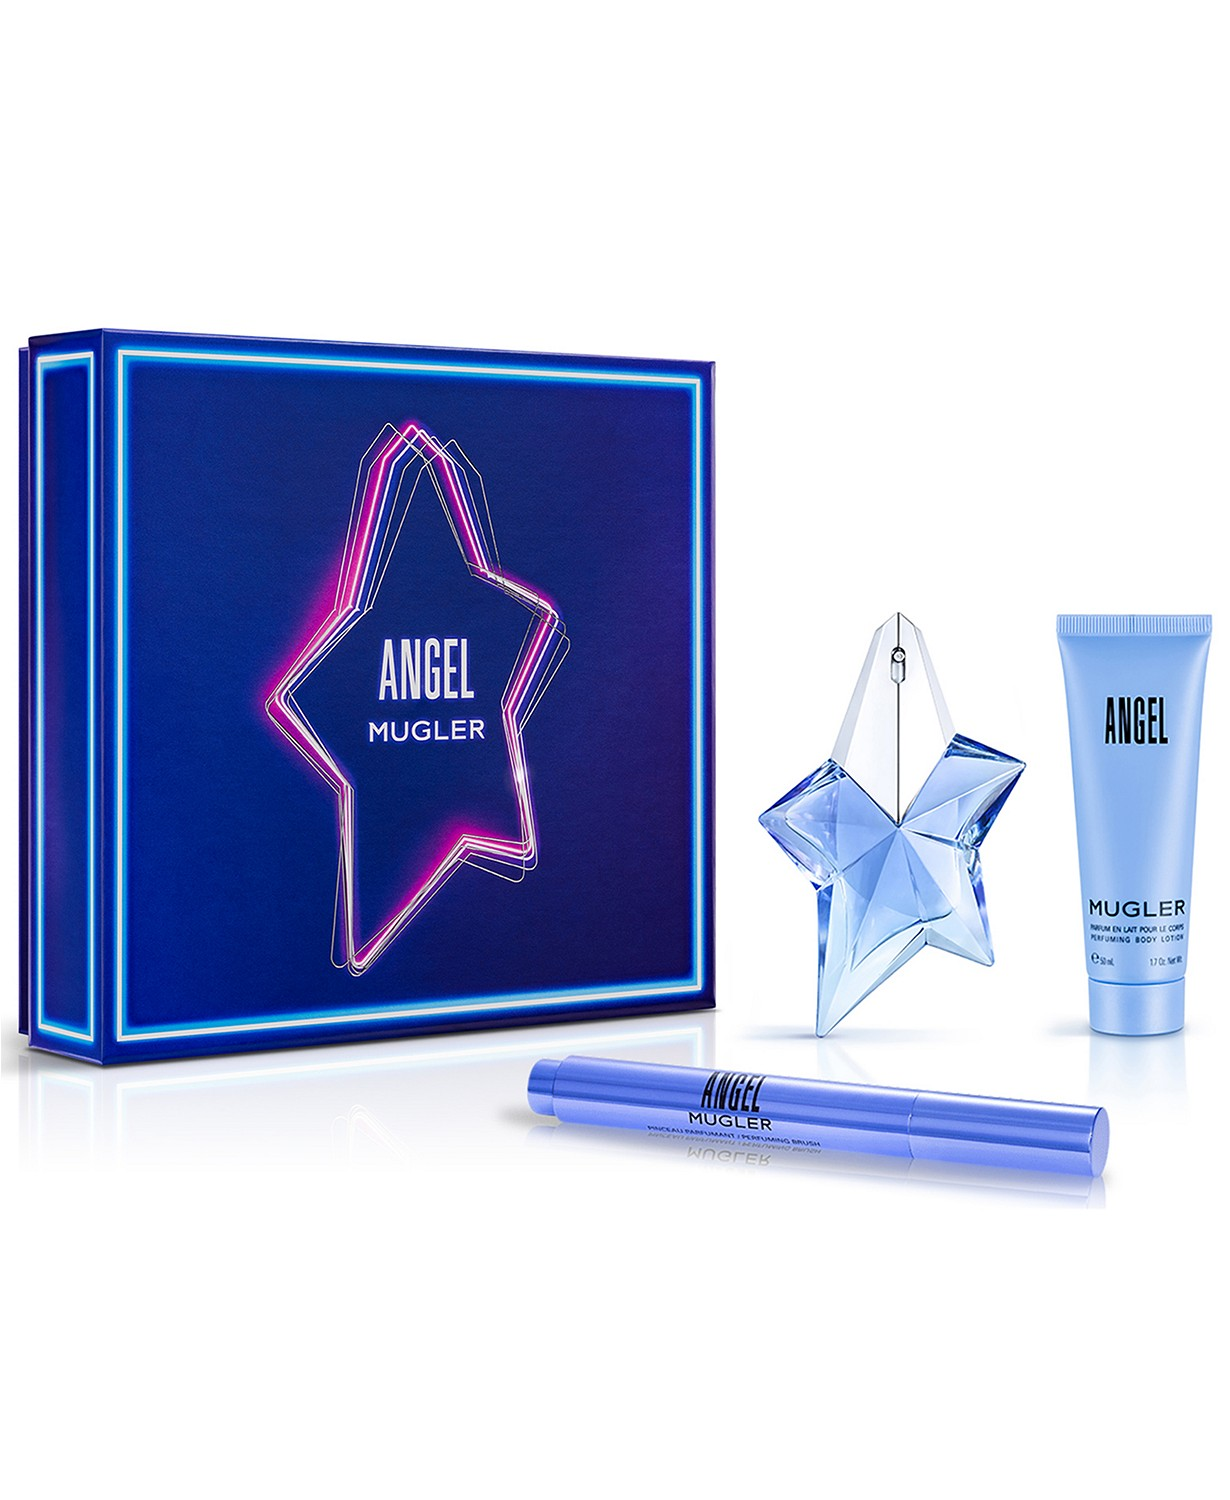 3-Pc. ANGEL Eau de Parfum Gift Set $55.20 (40% off)